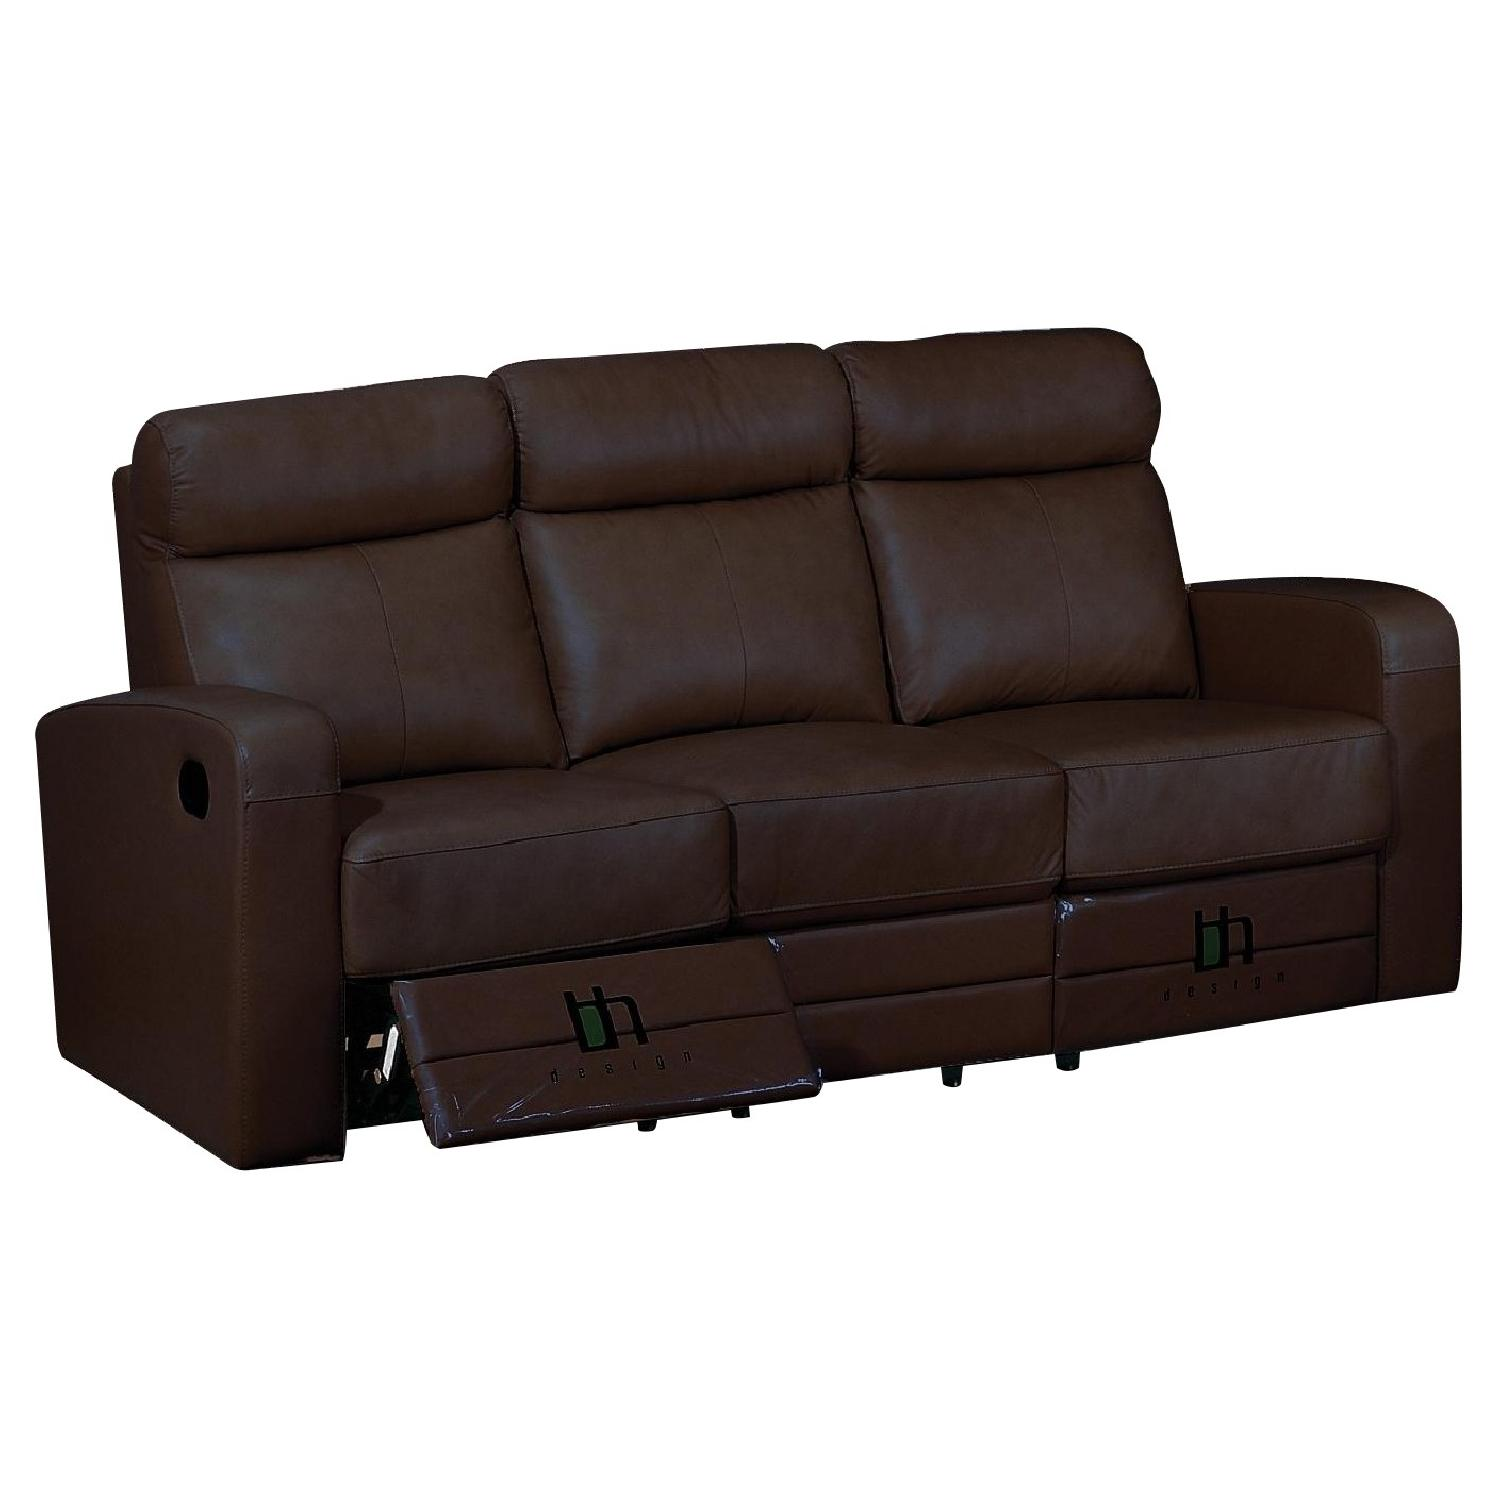 Apartment Size Recliner Sofa in Brown Top Grain Leather - AptDeco